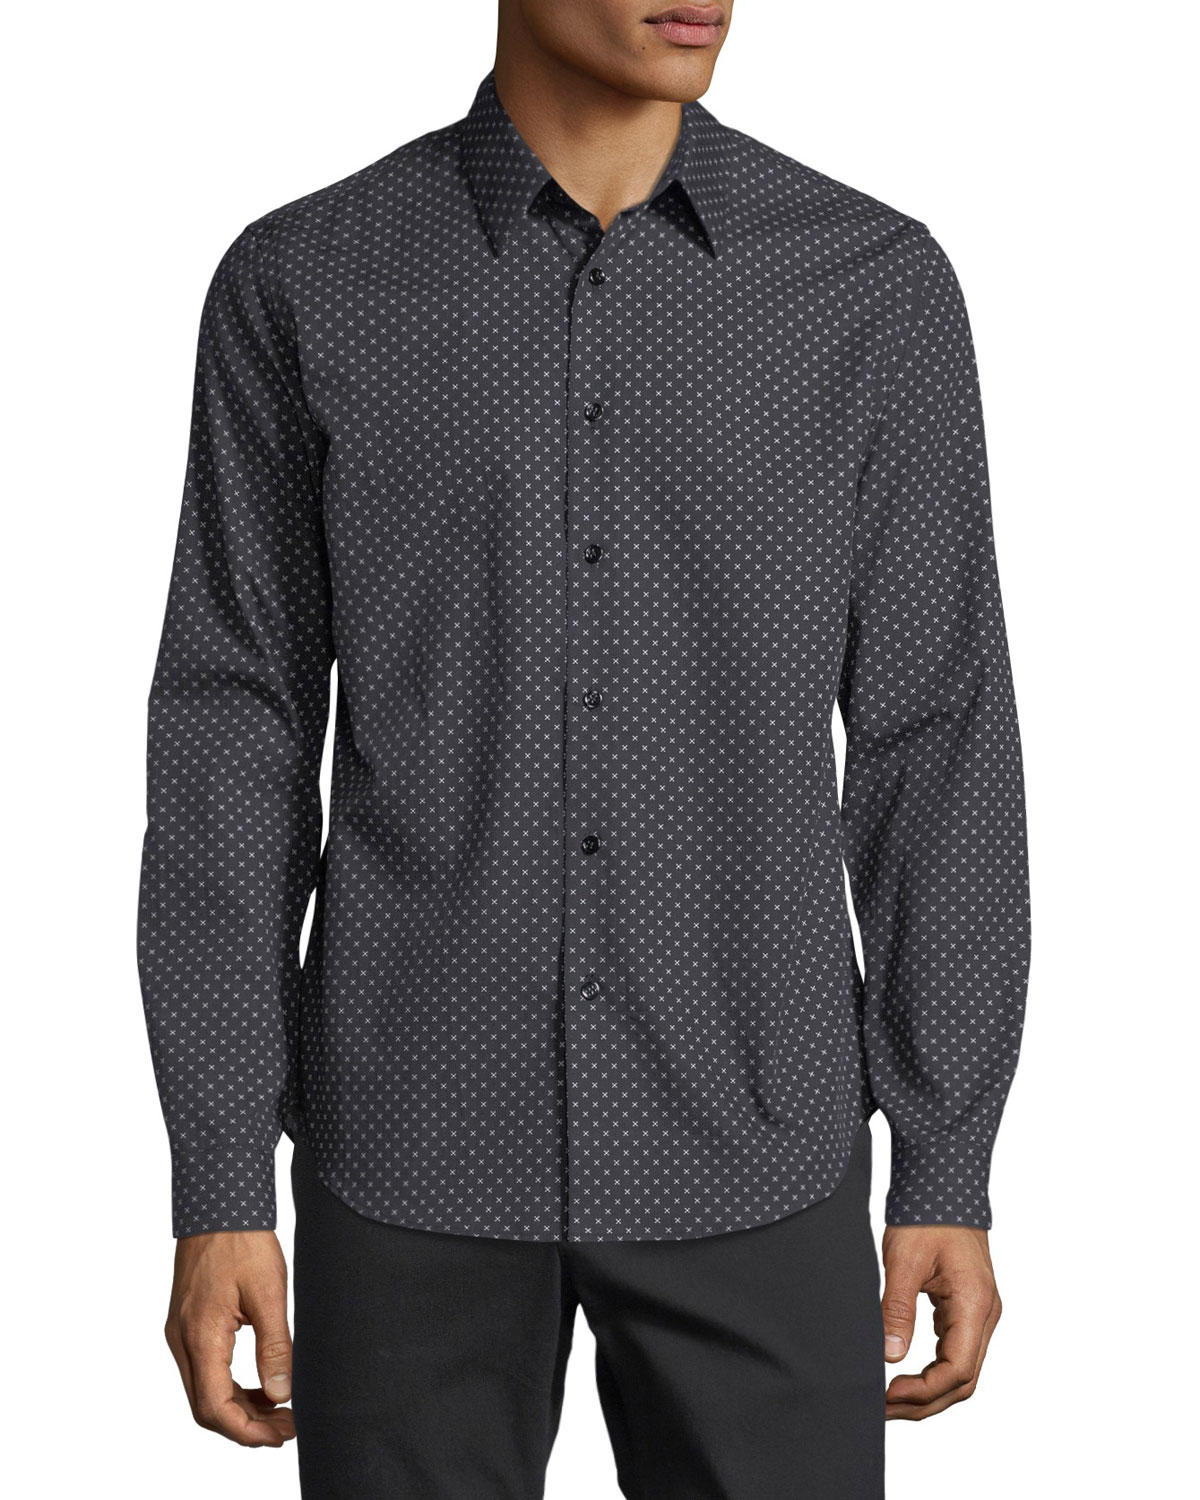 Stitch-Print Cotton Sport Shirt